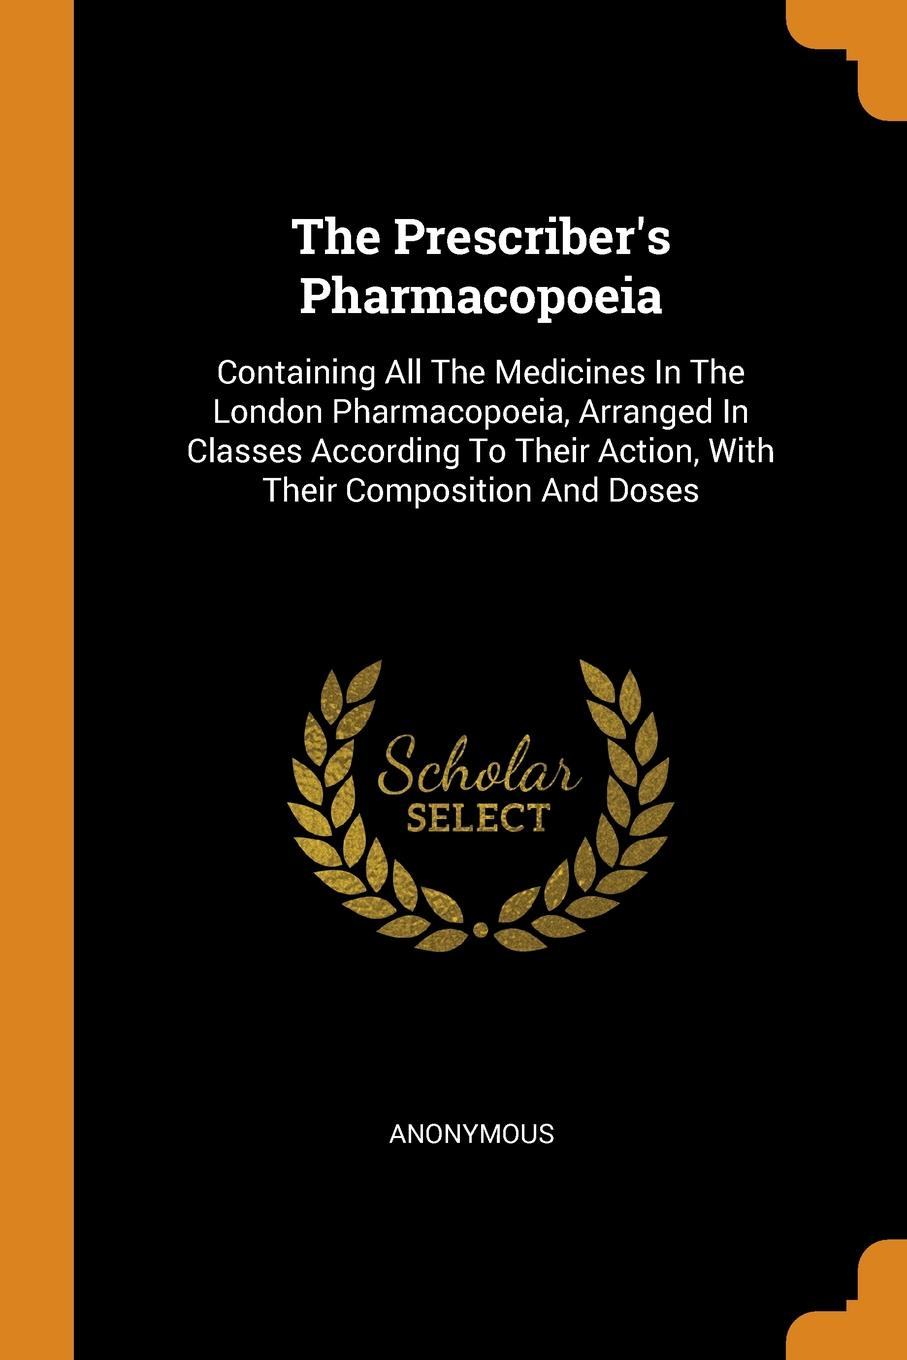 The Prescriber.s Pharmacopoeia. Containing All The Medicines In The London Pharmacopoeia, Arranged In Classes According To Their Action, With Their Composition And Doses